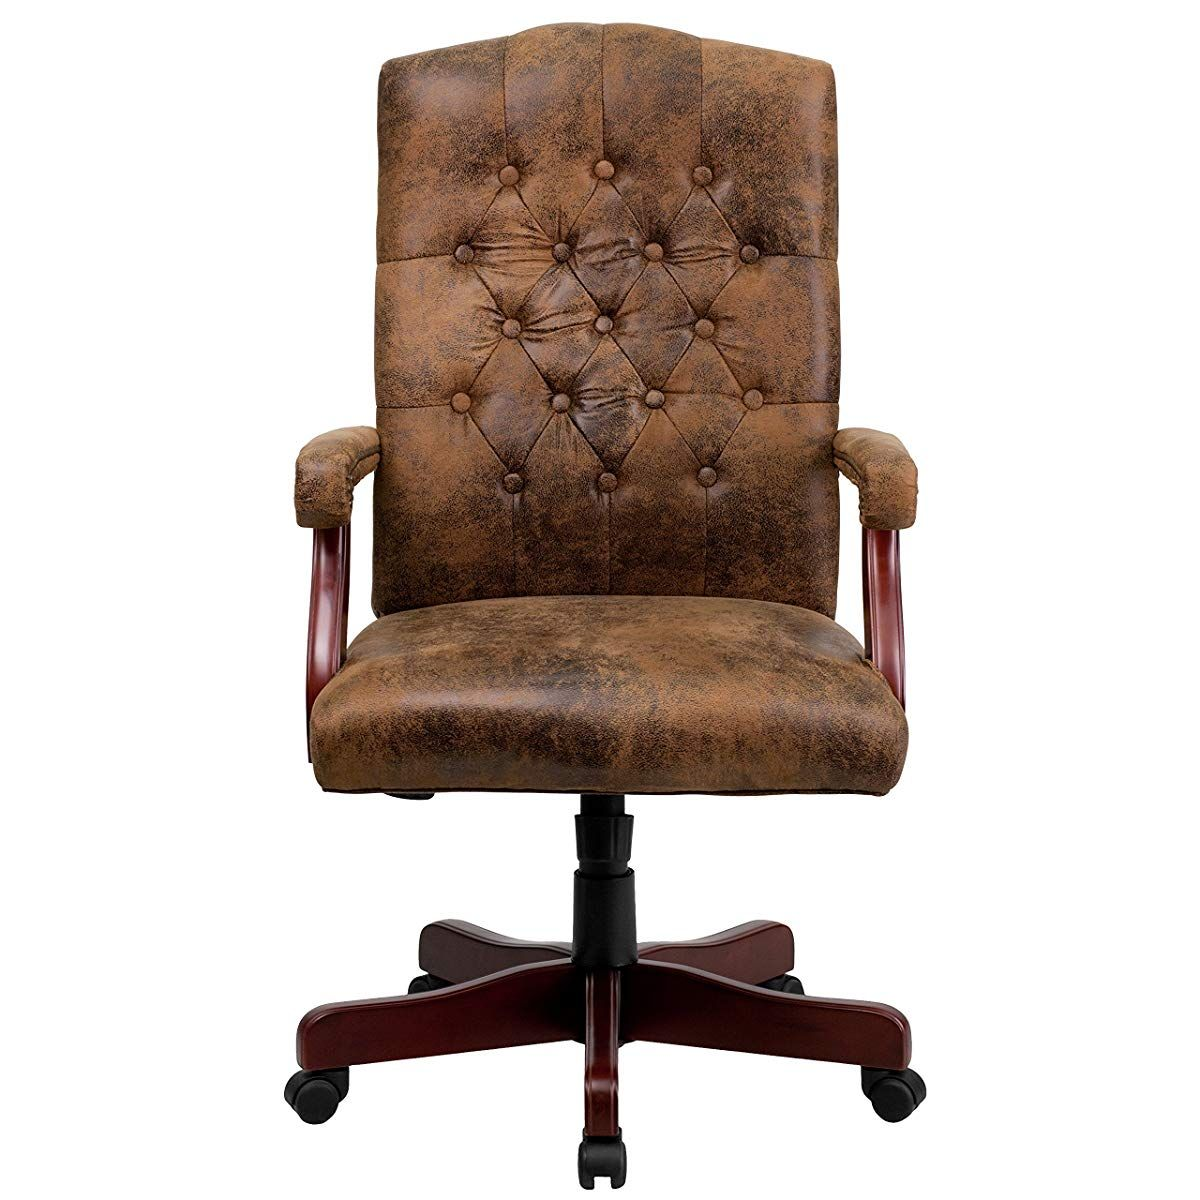 Brown swivel chair with arms brown office chair